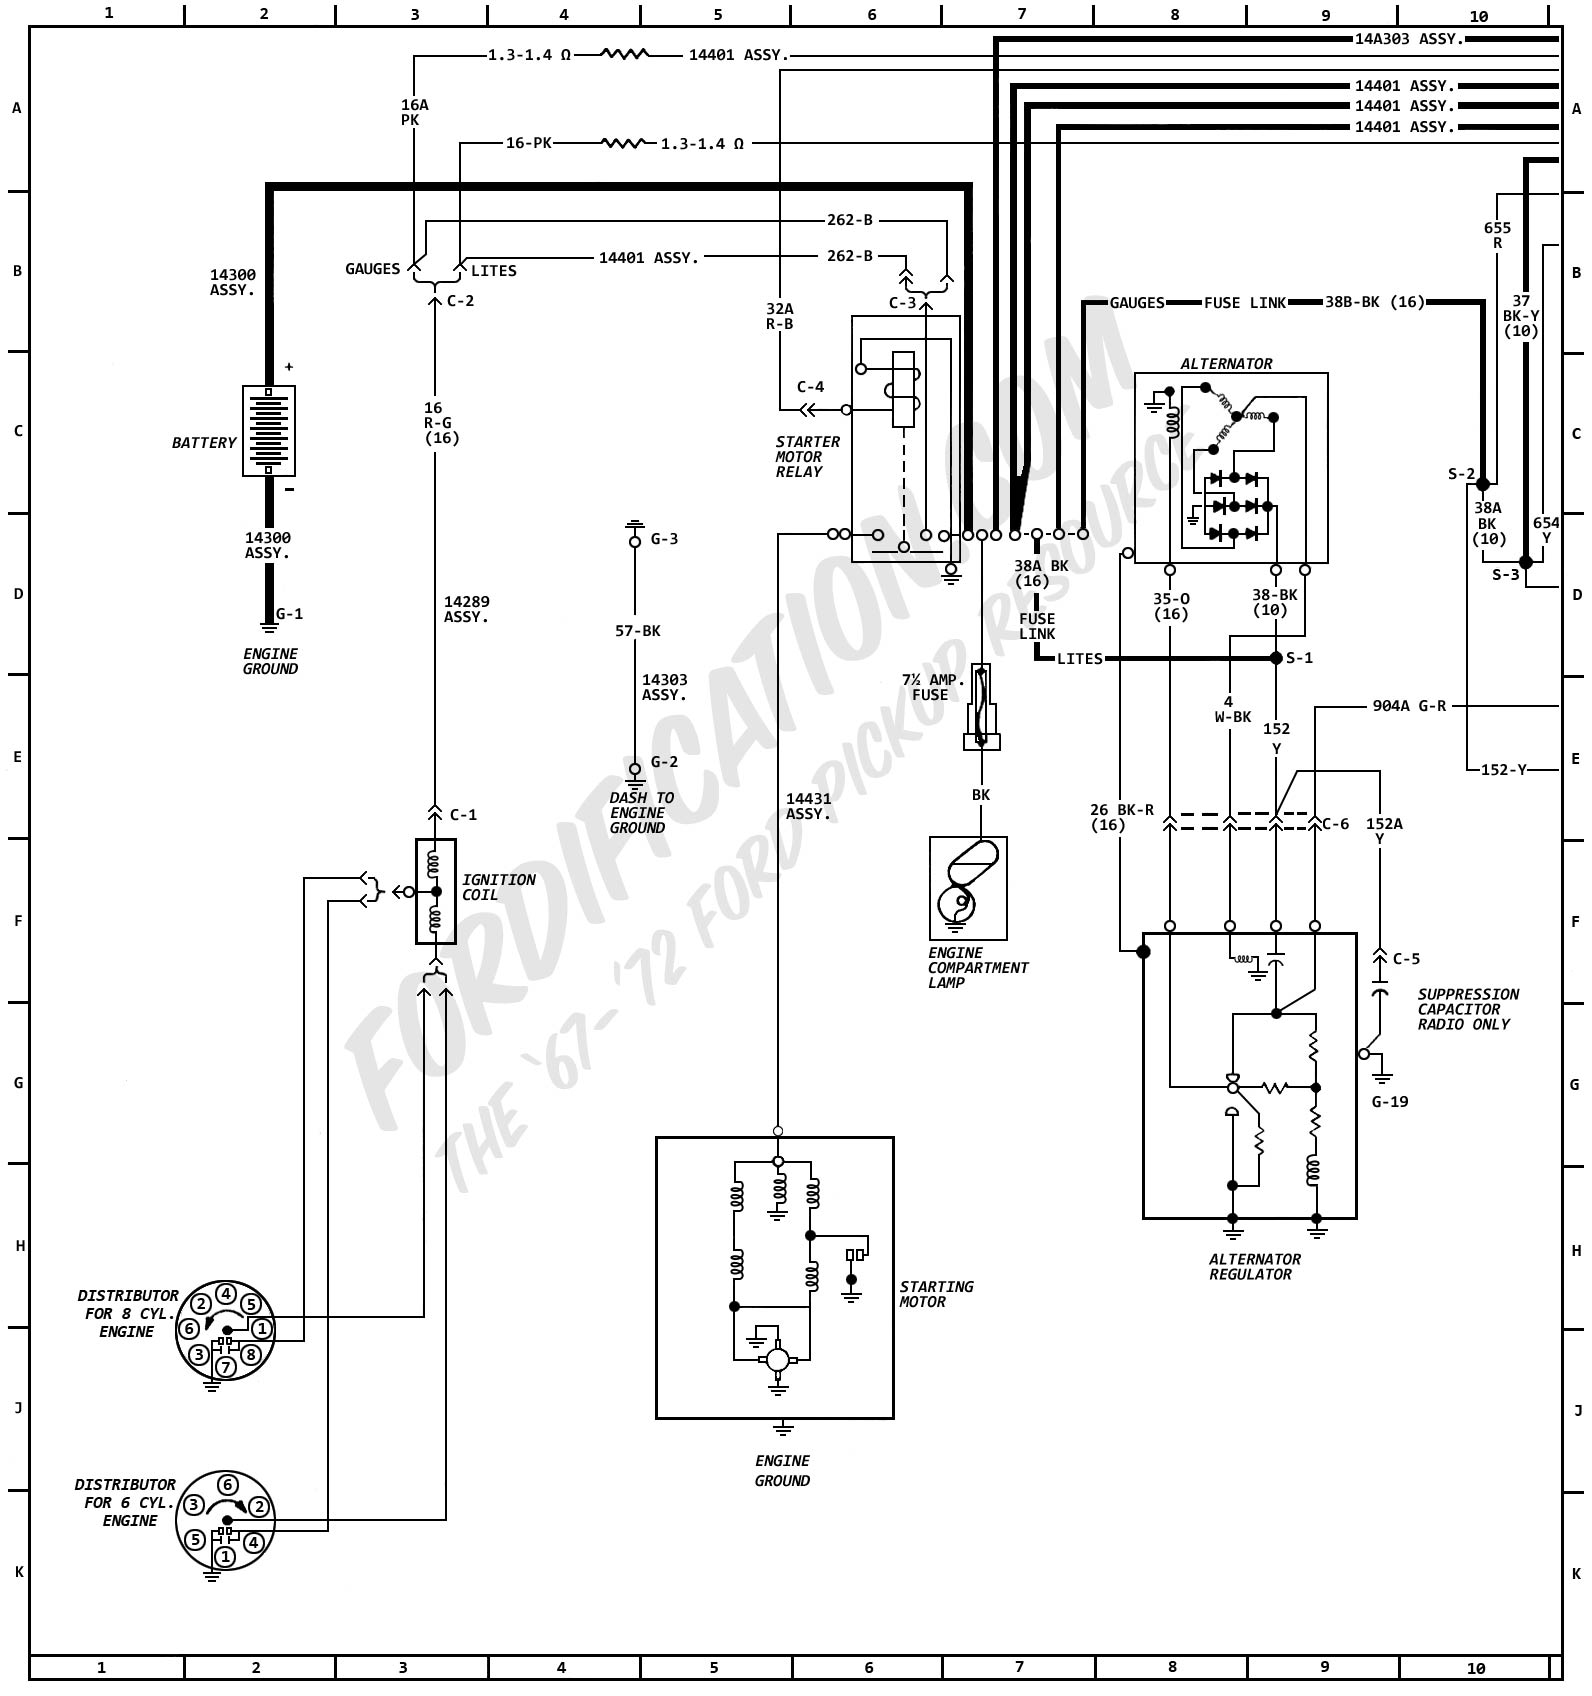 1972 ford truck wiring diagrams fordification com lincoln ranger 250 wiring  diagram lincoln ranger 9 wiring diagram